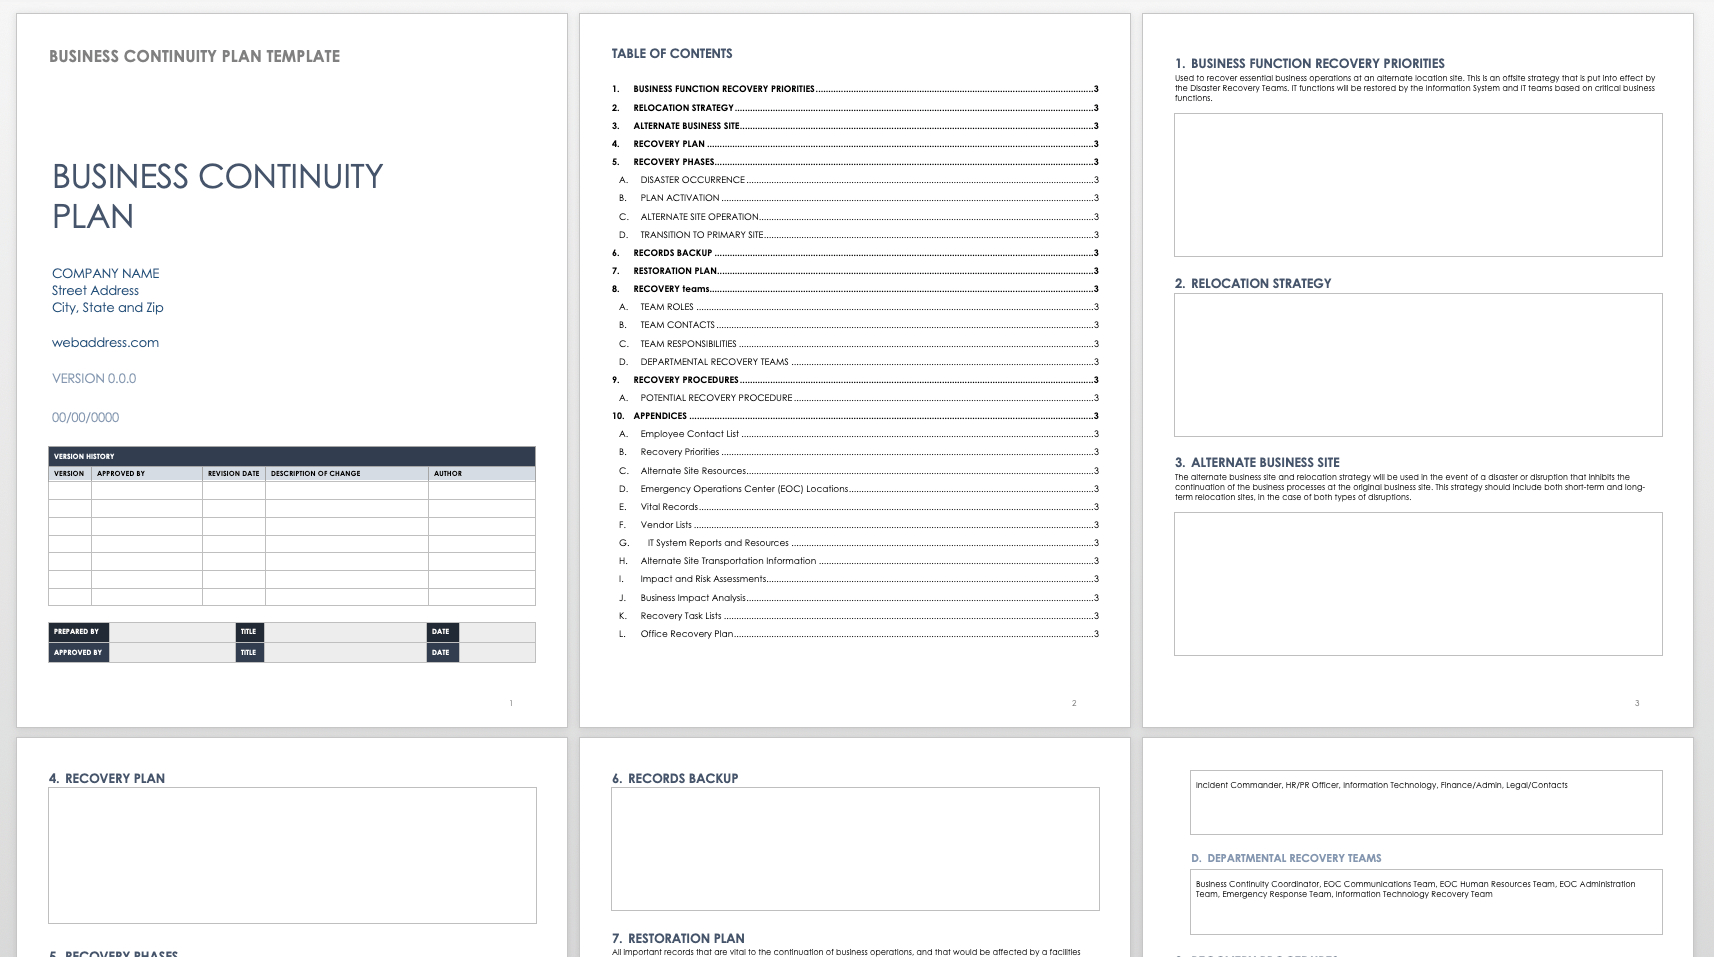 Free Business Continuity Plan Templates  Smartsheet In Business Continuity Plan Template Canada